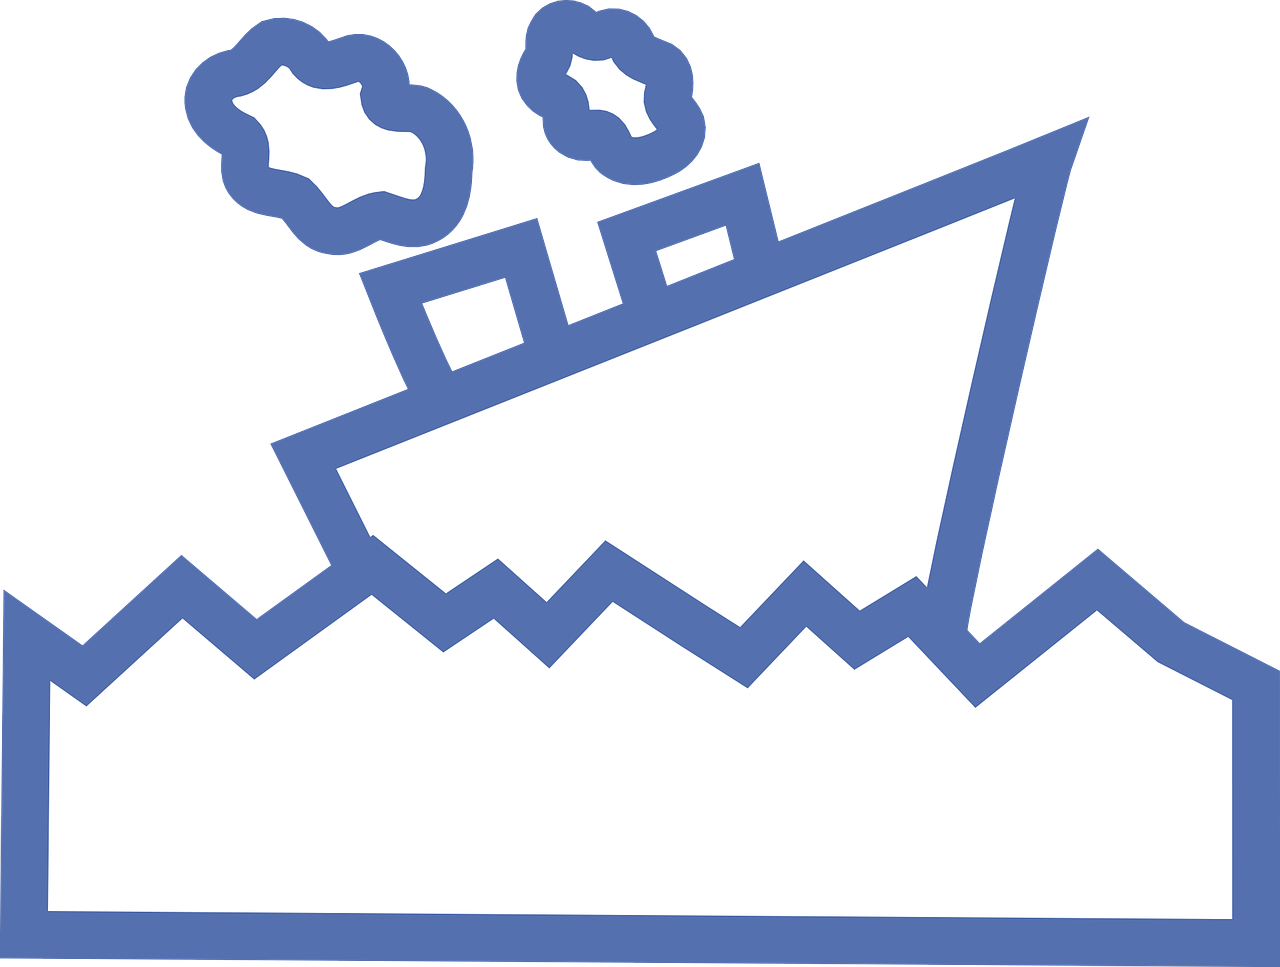 Boat coloring pages free for kids 8